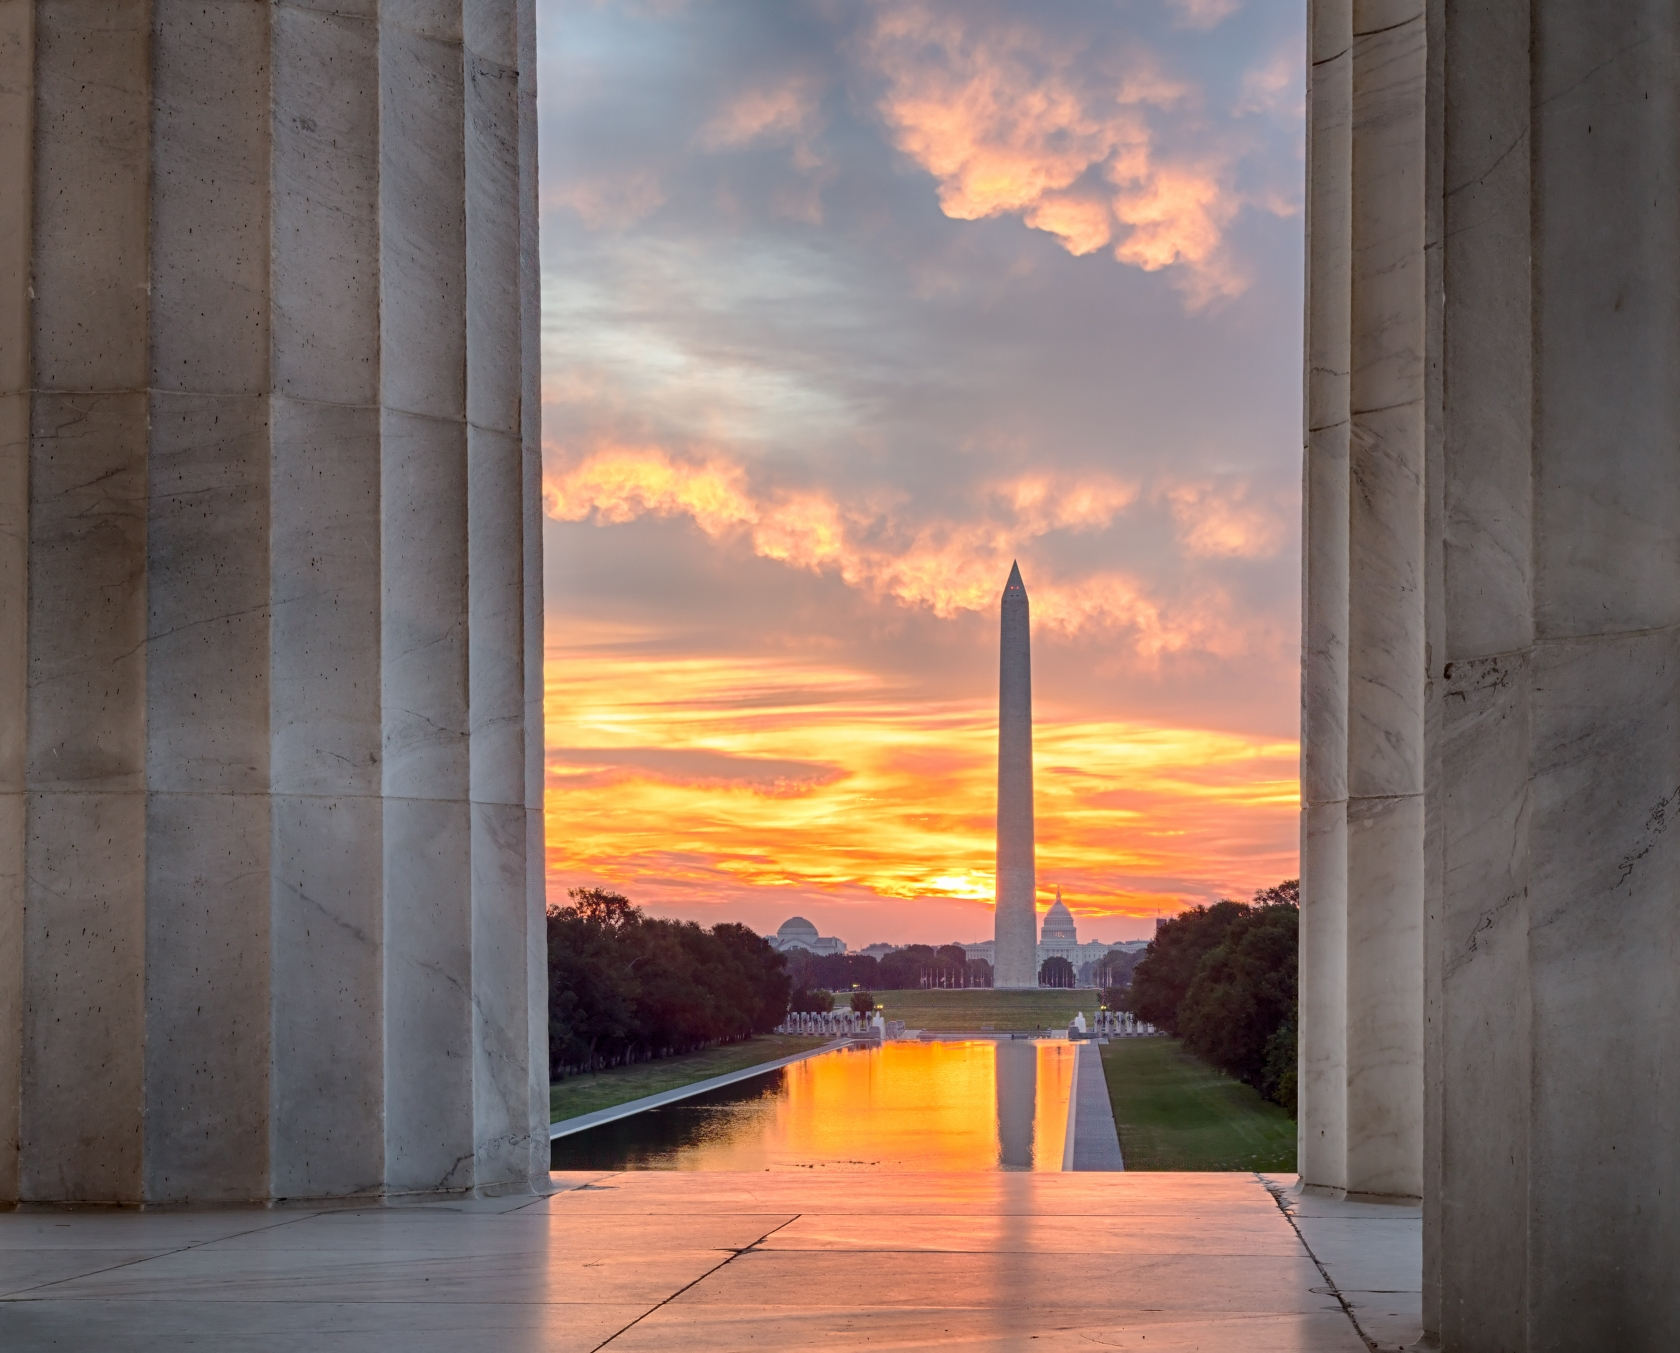 View of National Mall from the Lincoln Memorial at sunset